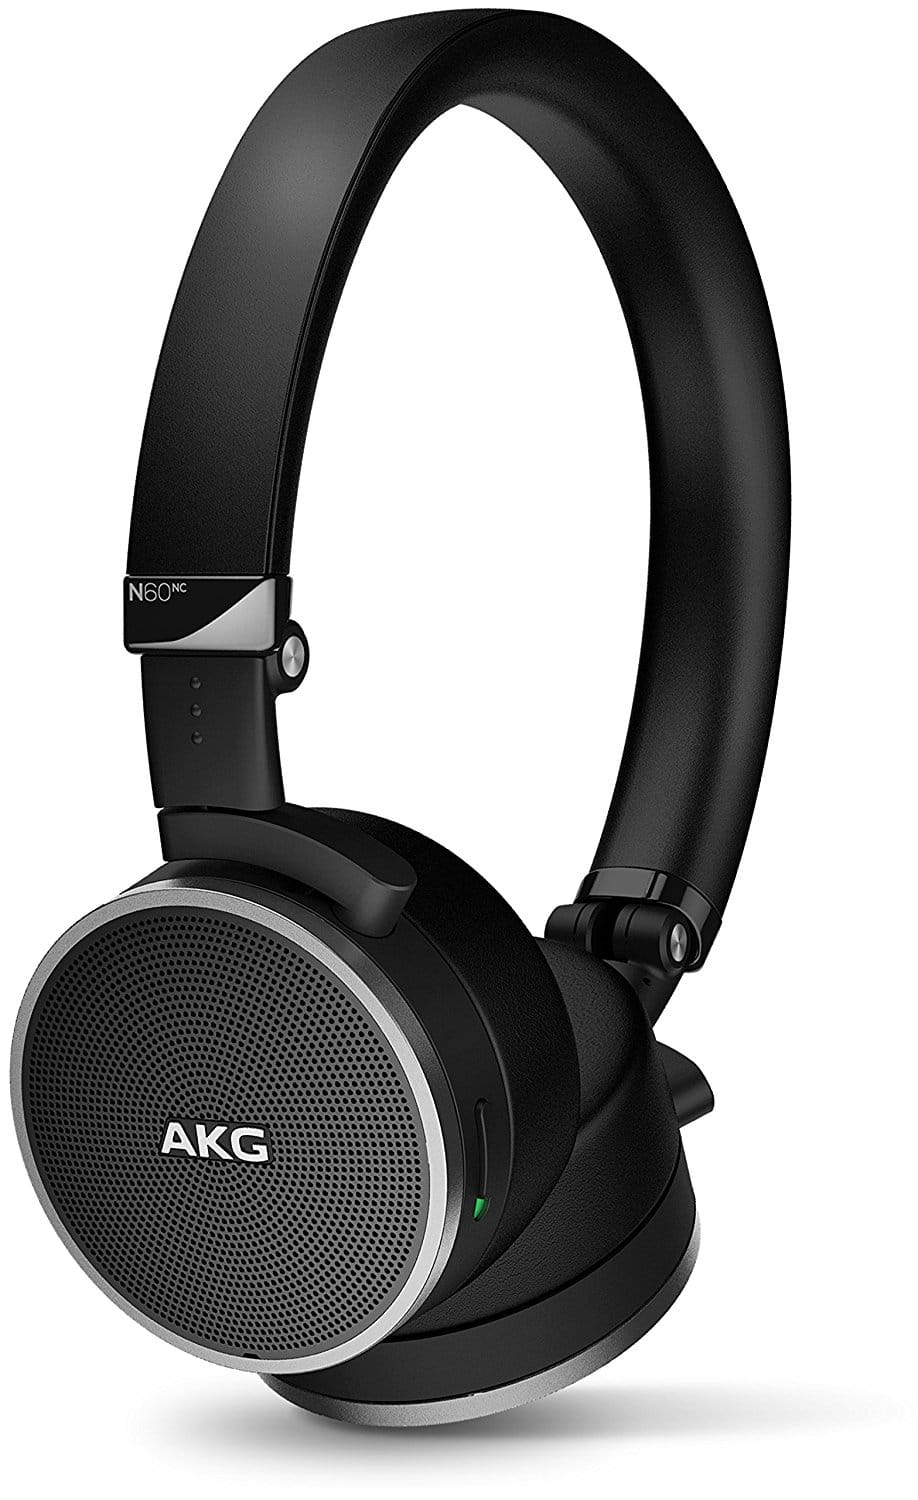 AKG N60 NC Top Rated Noise Cancelling Headphones Refurbished $99.99 + Free Shipping